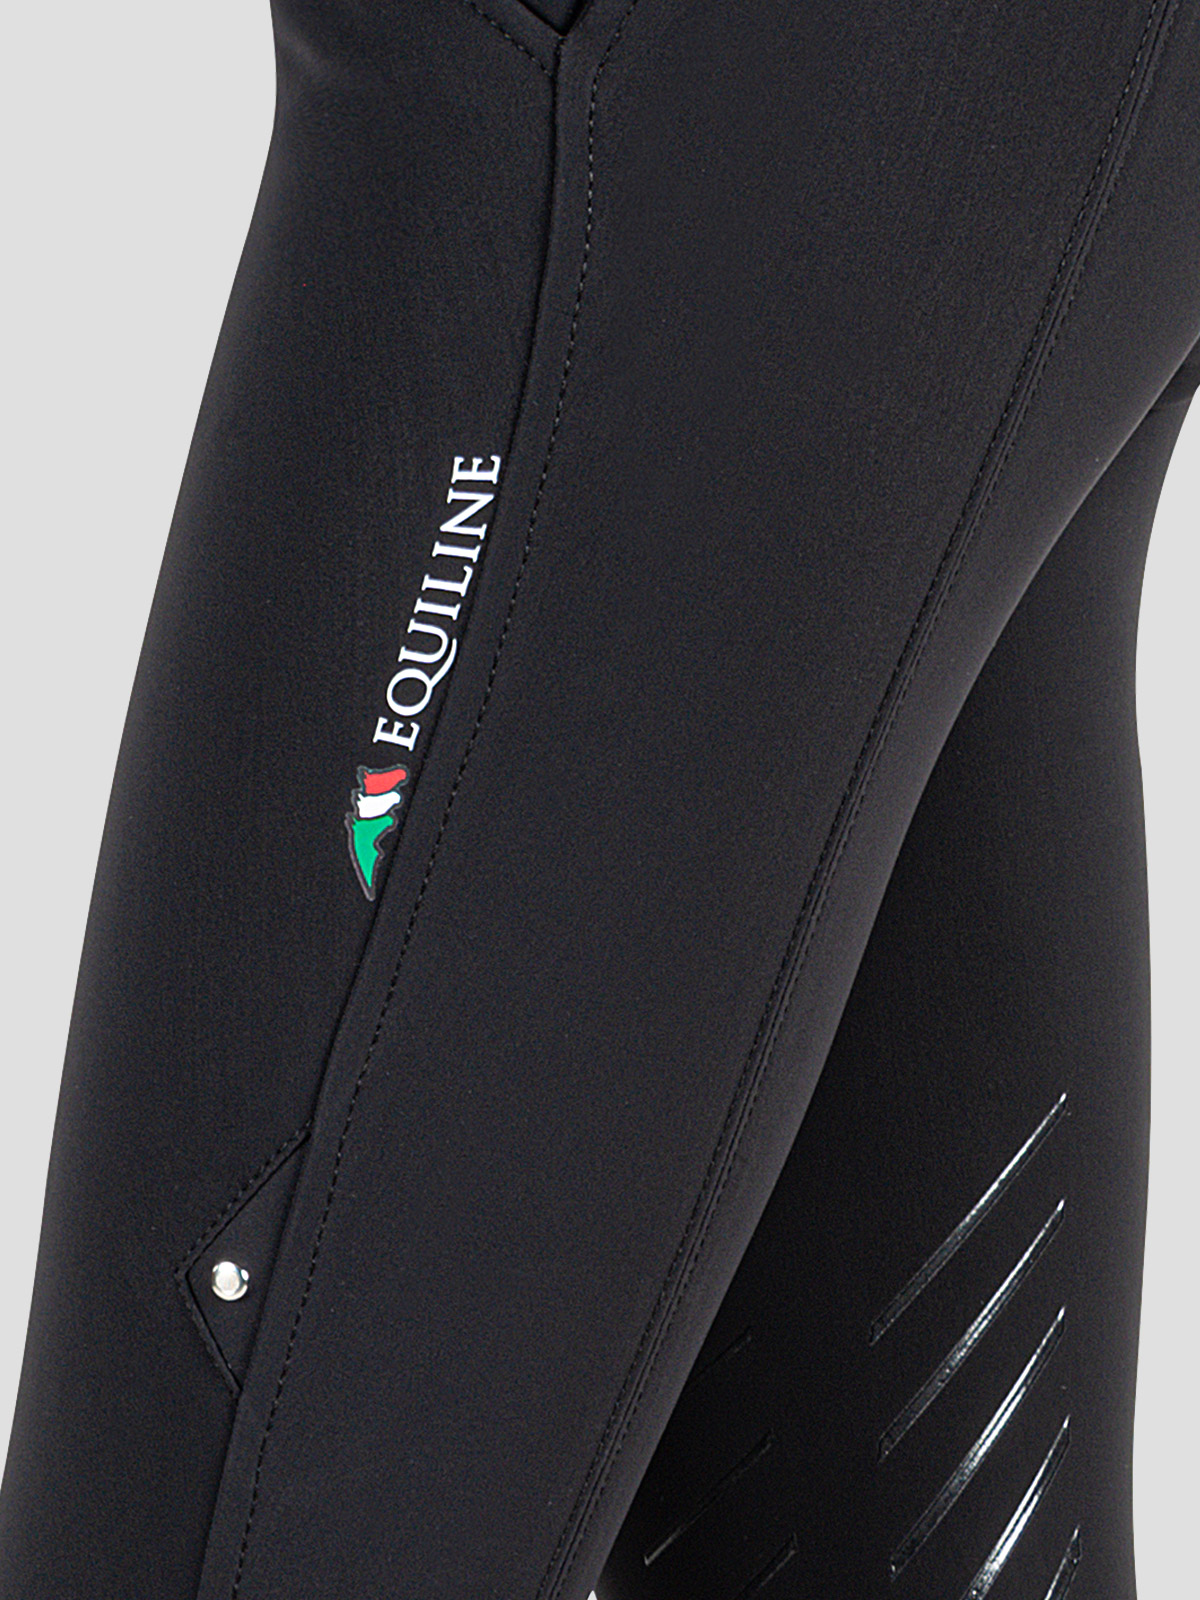 TEAM COLLECTION - WOMEN'S KNEE GRIP BREECHES IN B-MOVE 4